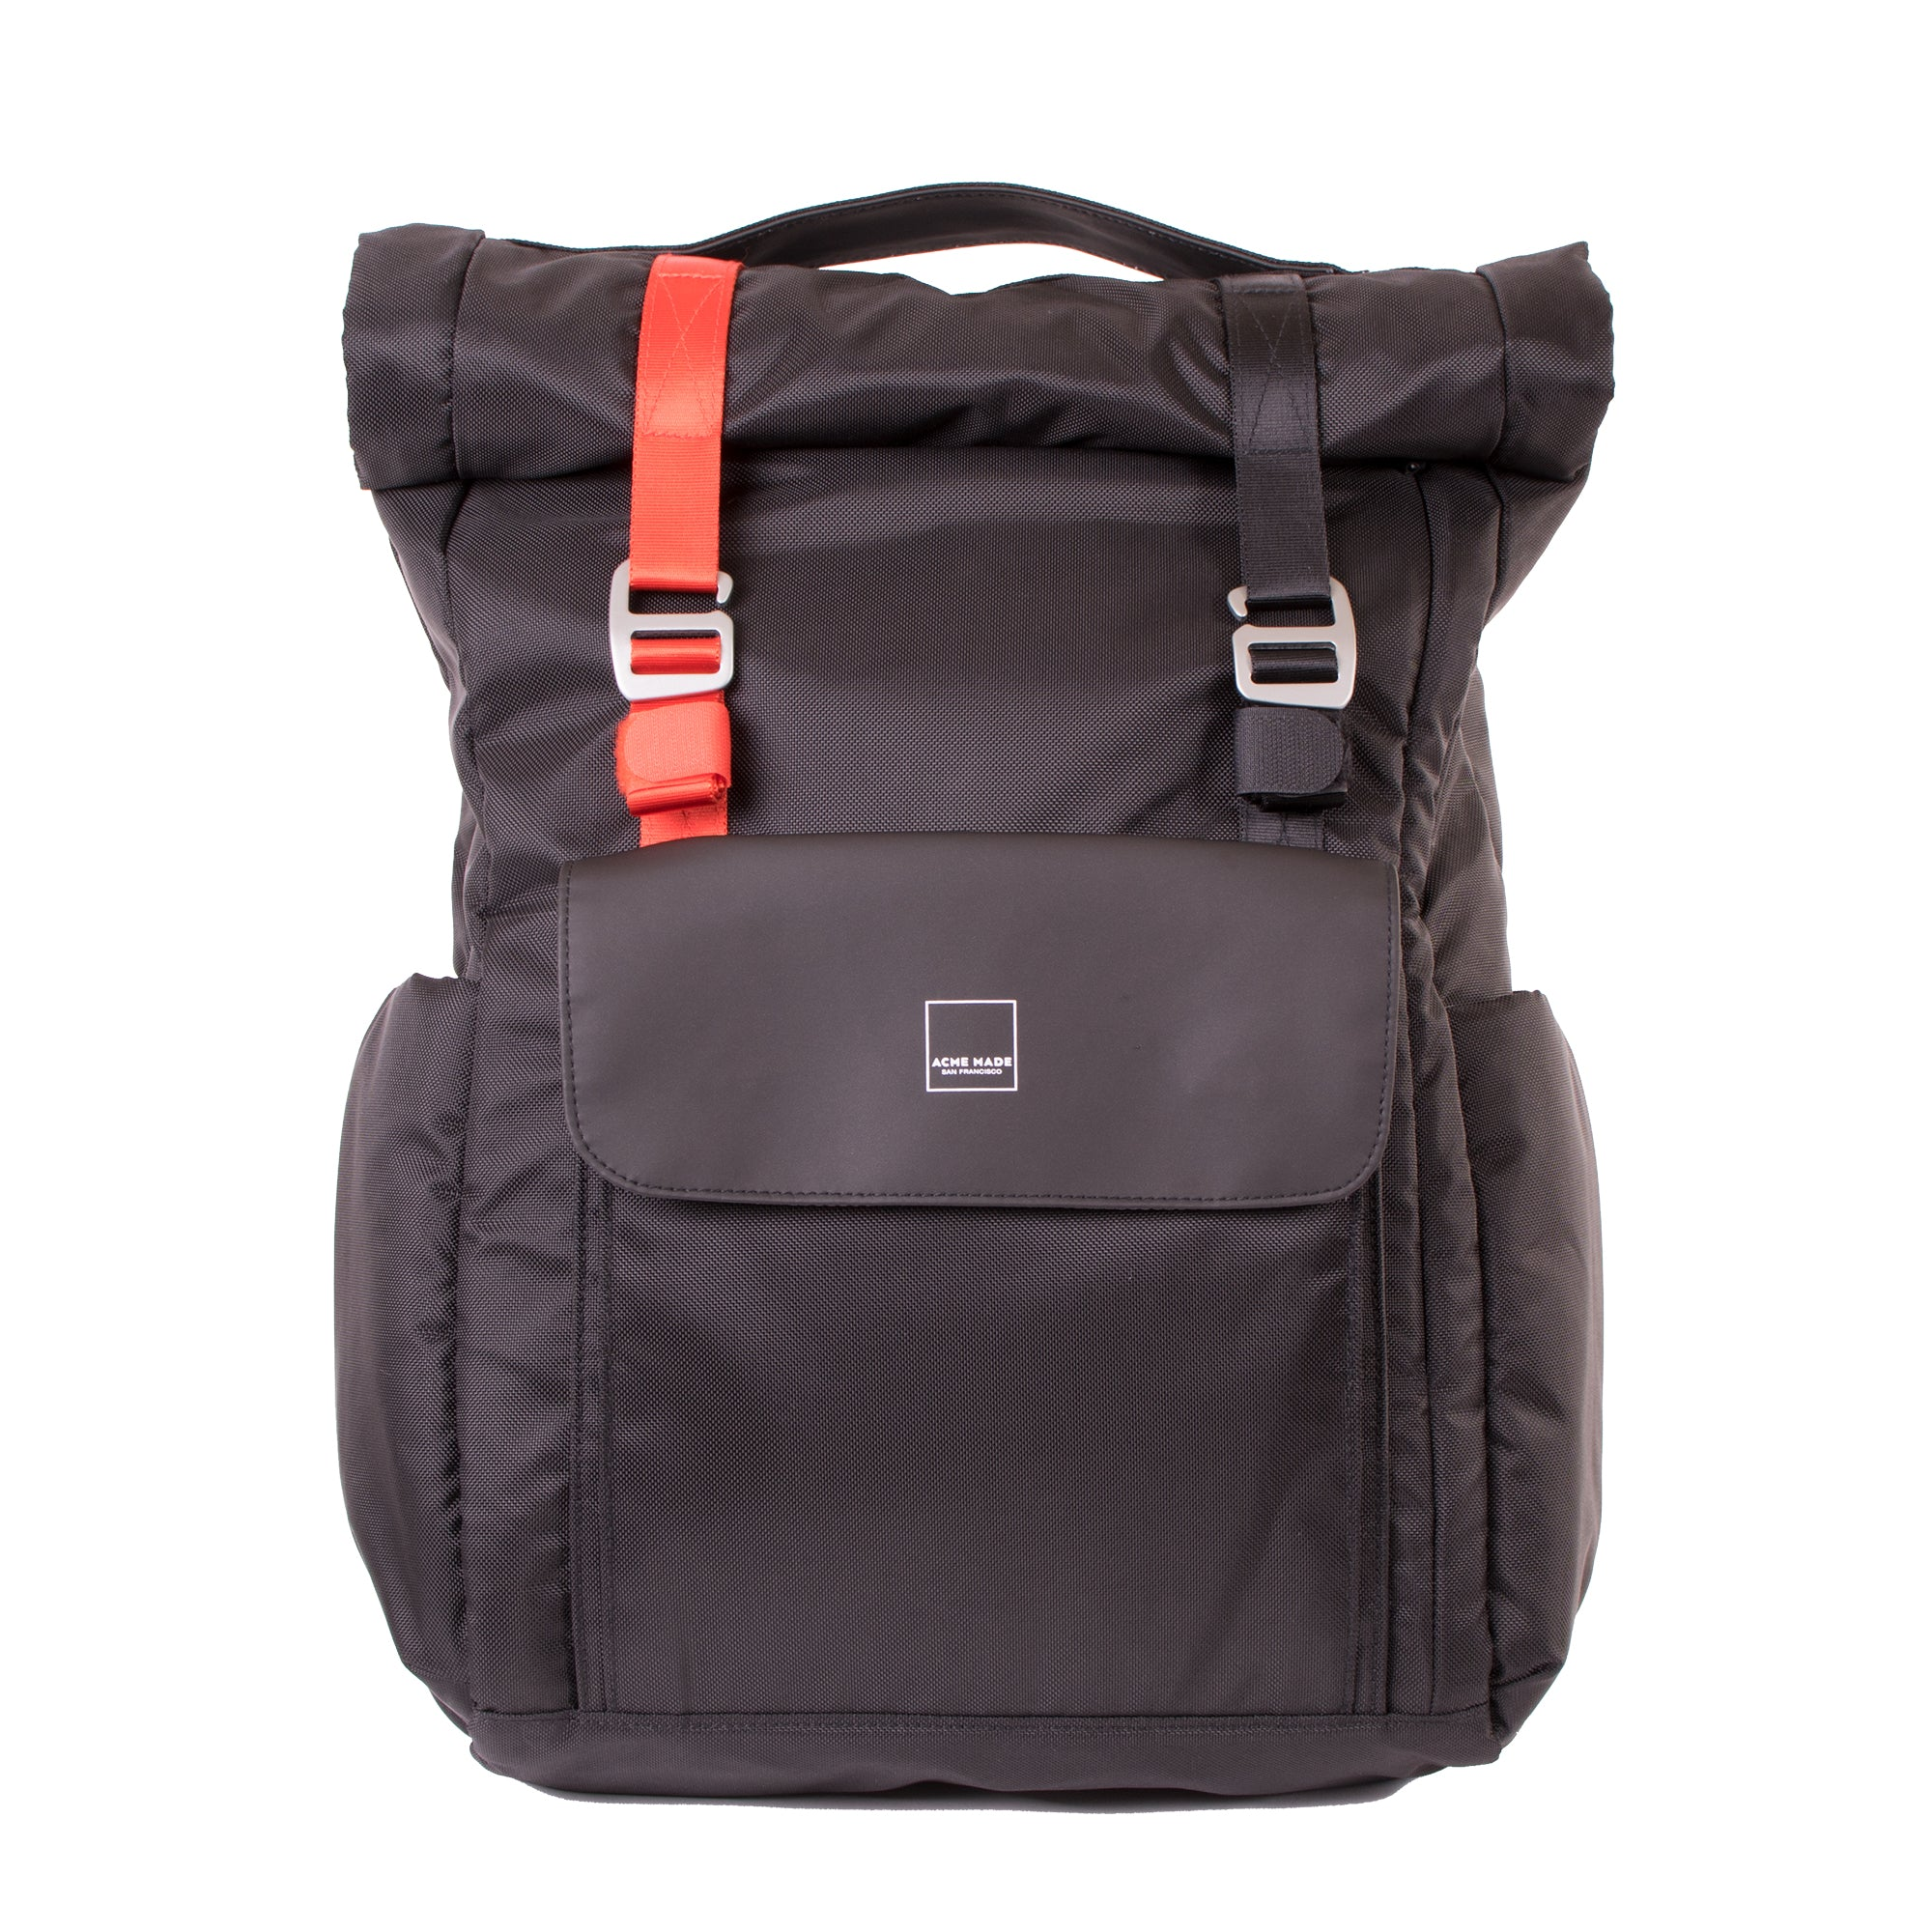 The Acme Made North Point Venturer Backpack travel product recommended by Daneen Kiger on Lifney.